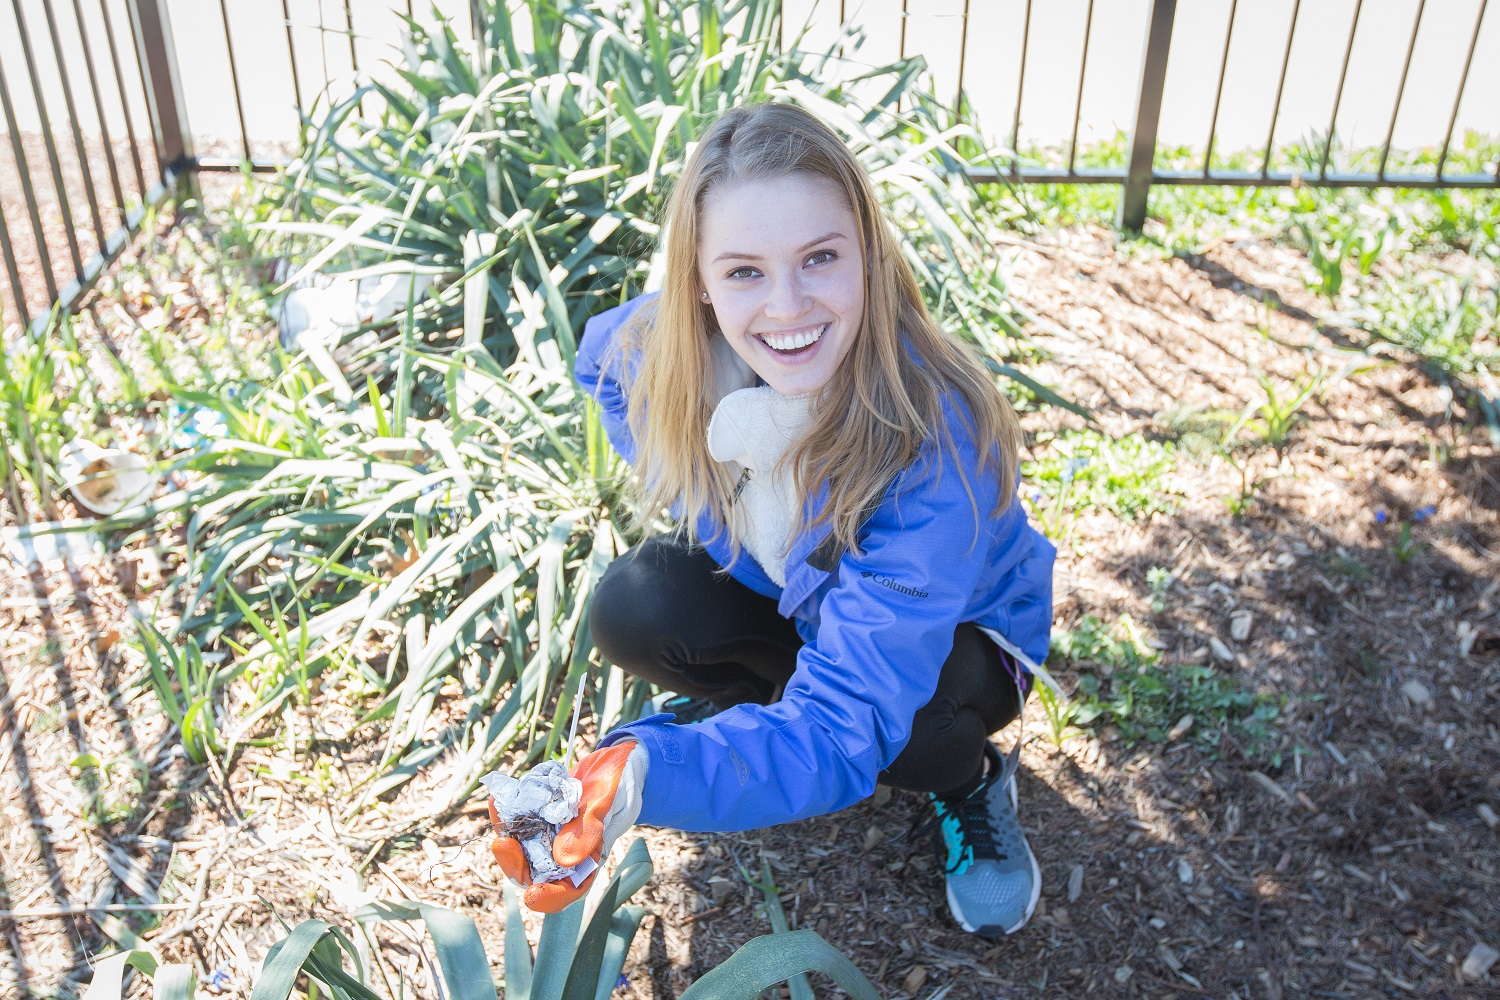 Northeastern Hillel plants and cleans up in a local park.